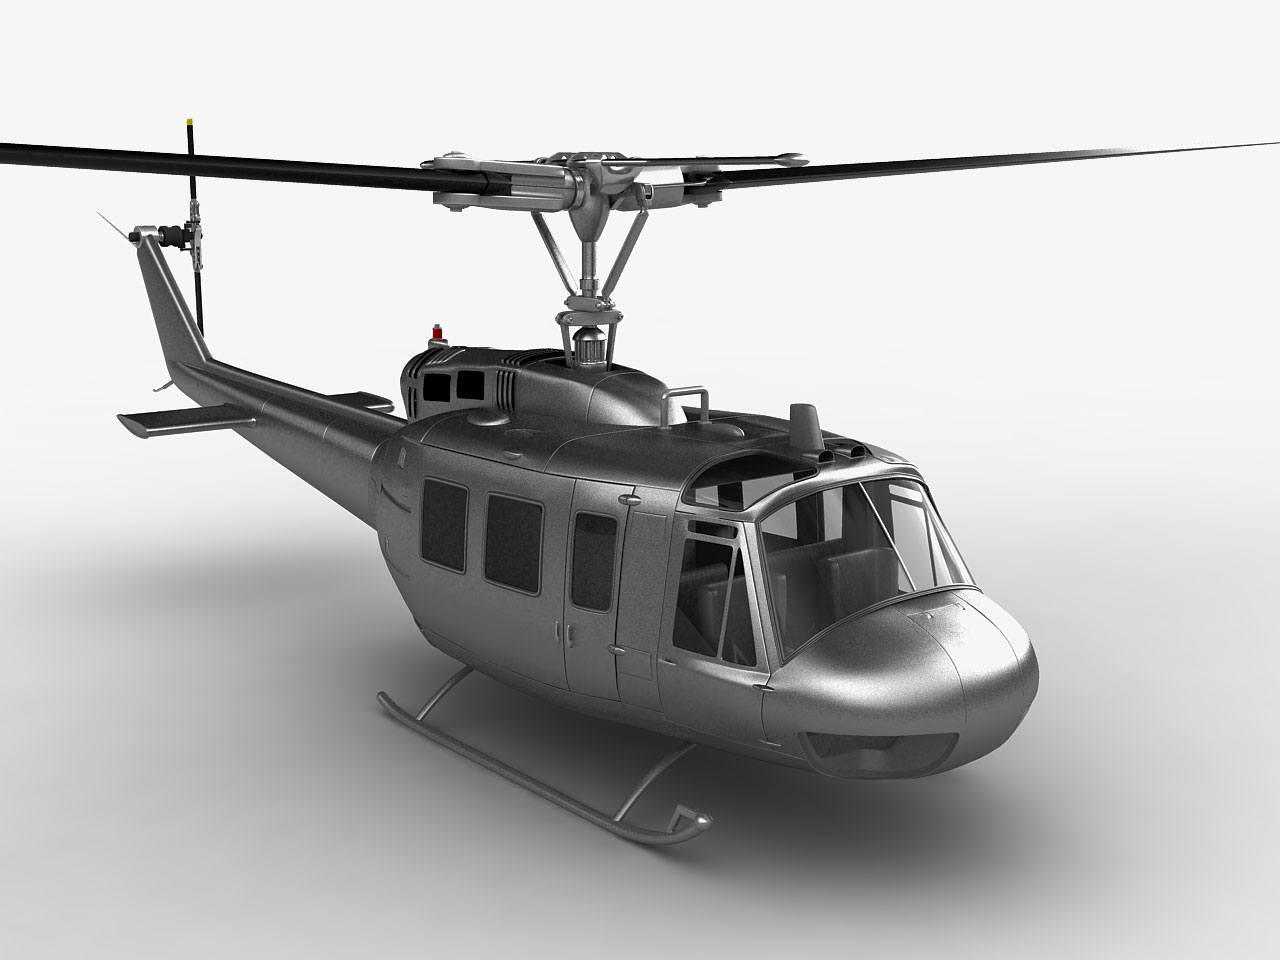 Huey Helicopter For Sale >> Huey Helicopter Wallpaper - WallpaperSafari